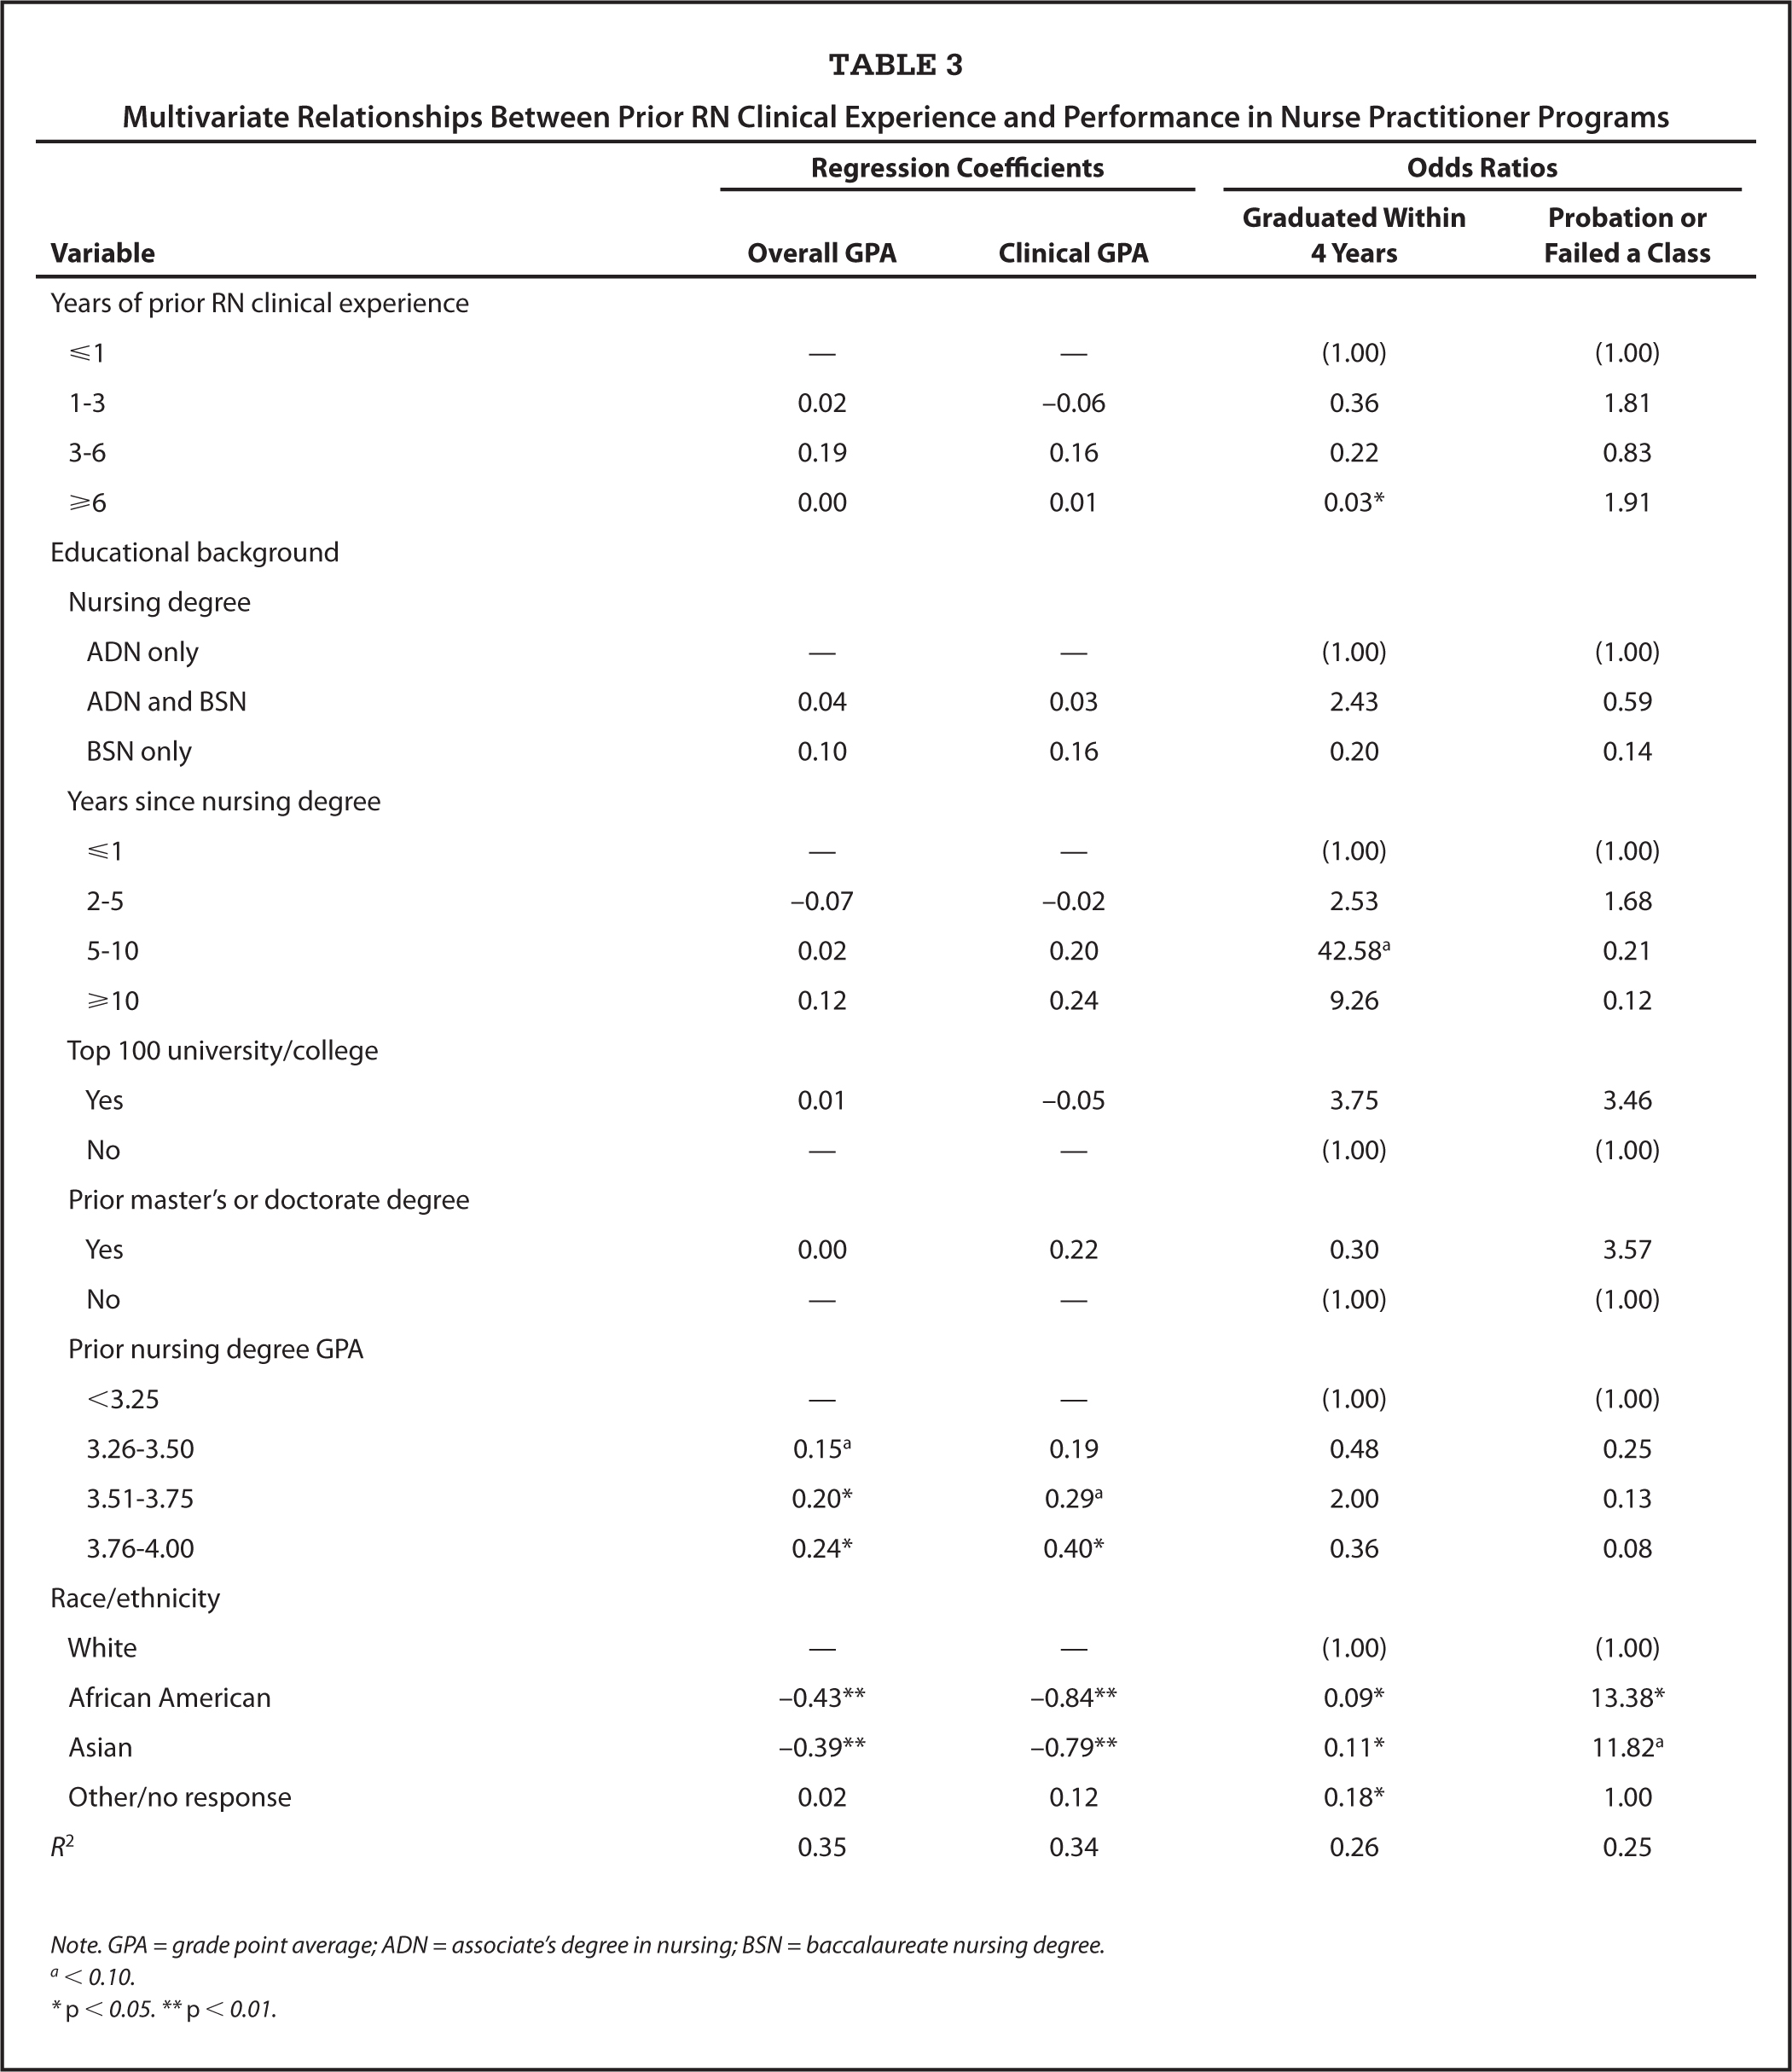 Multivariate Relationships Between Prior RN Clinical Experience and Performance in Nurse Practitioner Programs